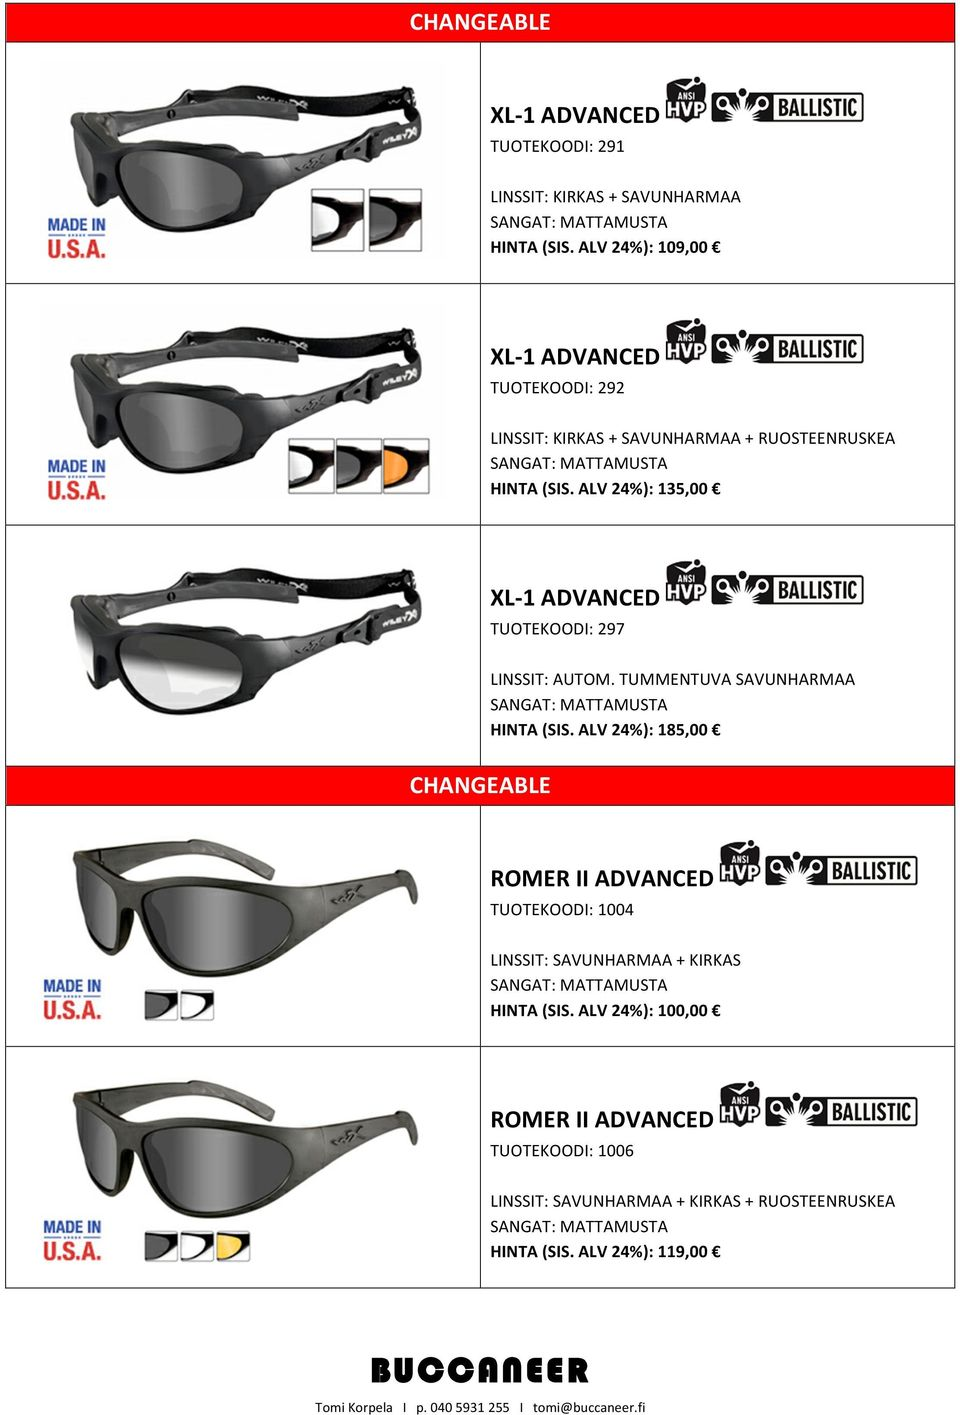 ALV 24%): 135,00 XL- 1 ADVANCED TUOTEKOODI: 297 CHANGEABLE LINSSIT: AUTOM.